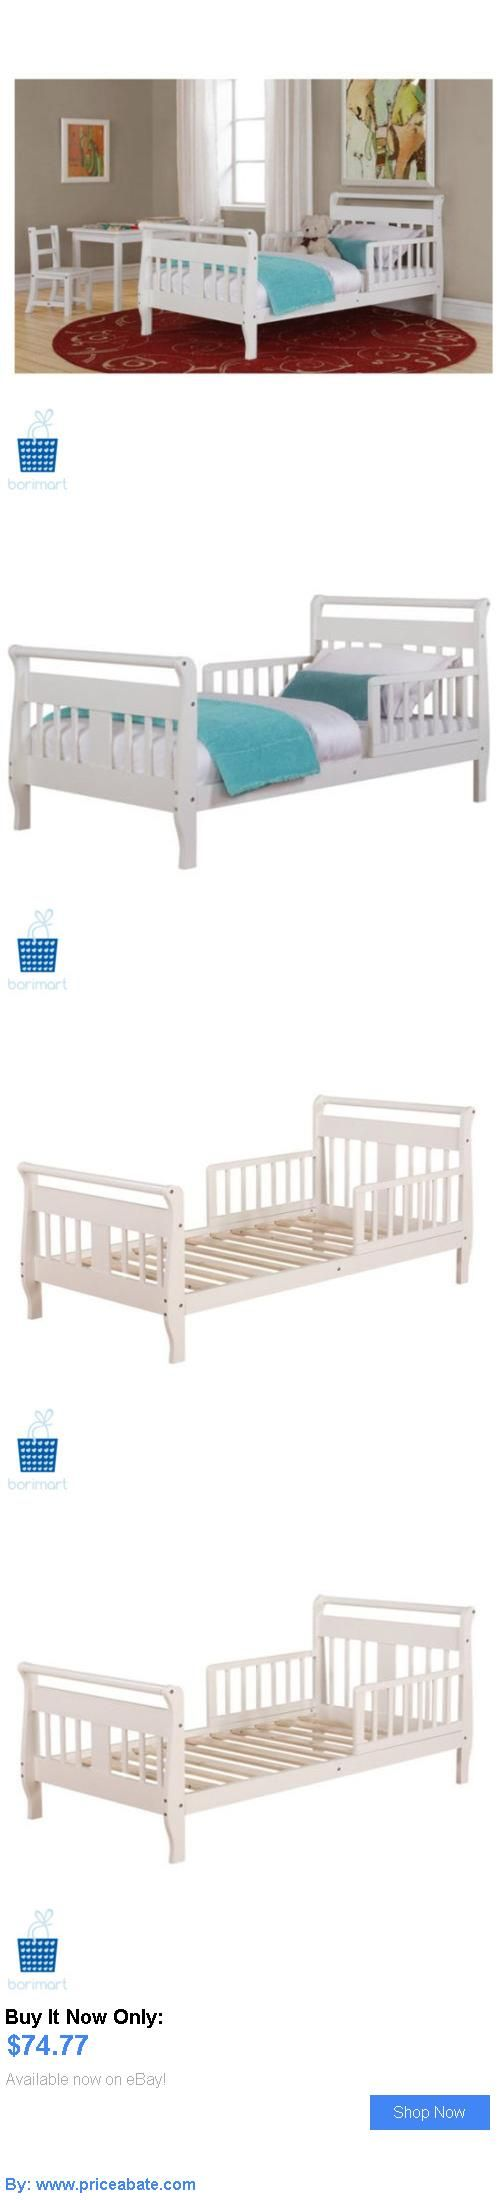 Kids Furniture: Baby Relax Low Height Safety Rails White Toddler Bed Kids Bedroom Furniture BUY IT NOW ONLY: $74.77 #priceabateKidsFurniture OR #priceabate